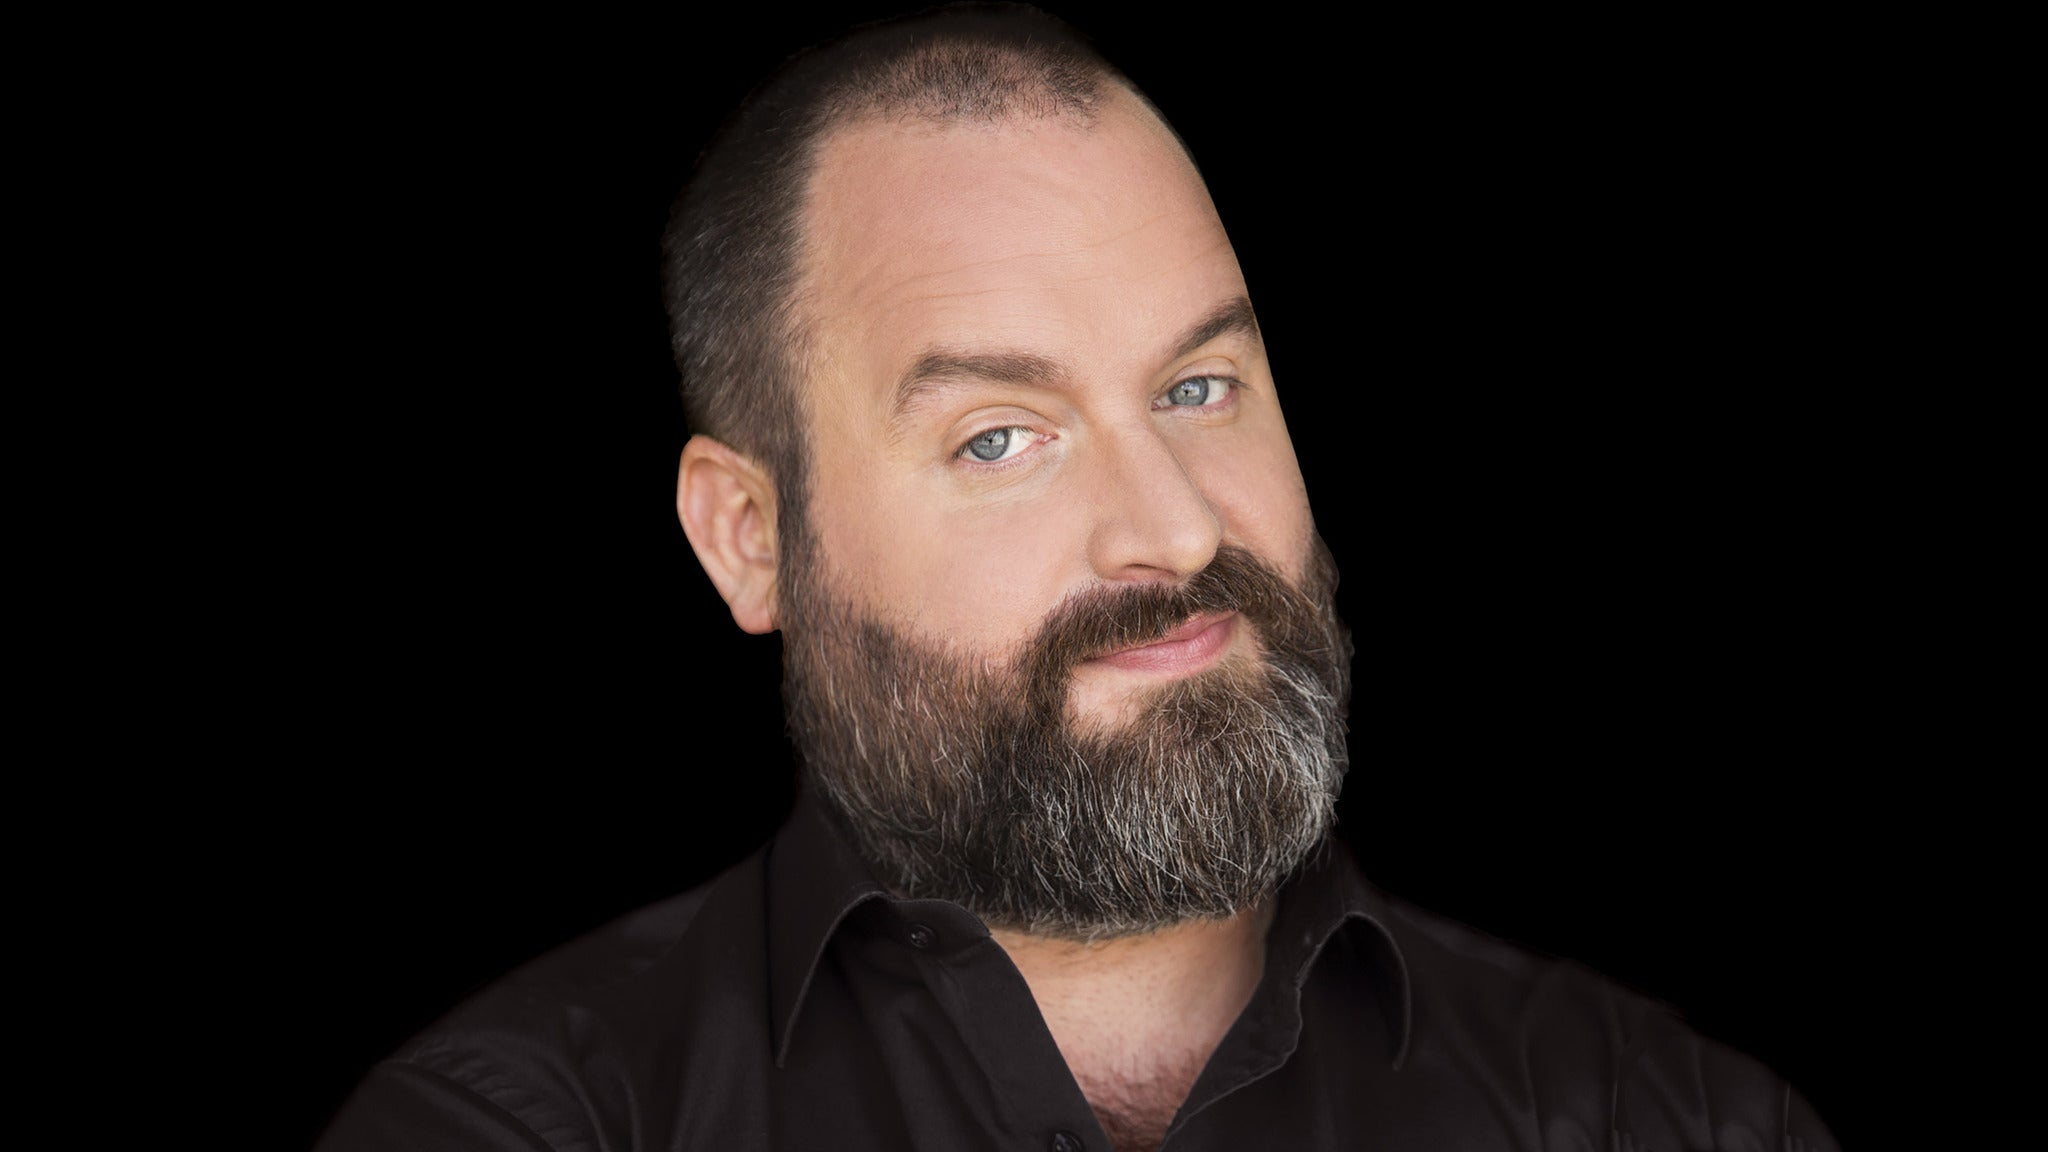 Tom Segura at Bakersfield Fox Theater - Bakersfield, CA 93301